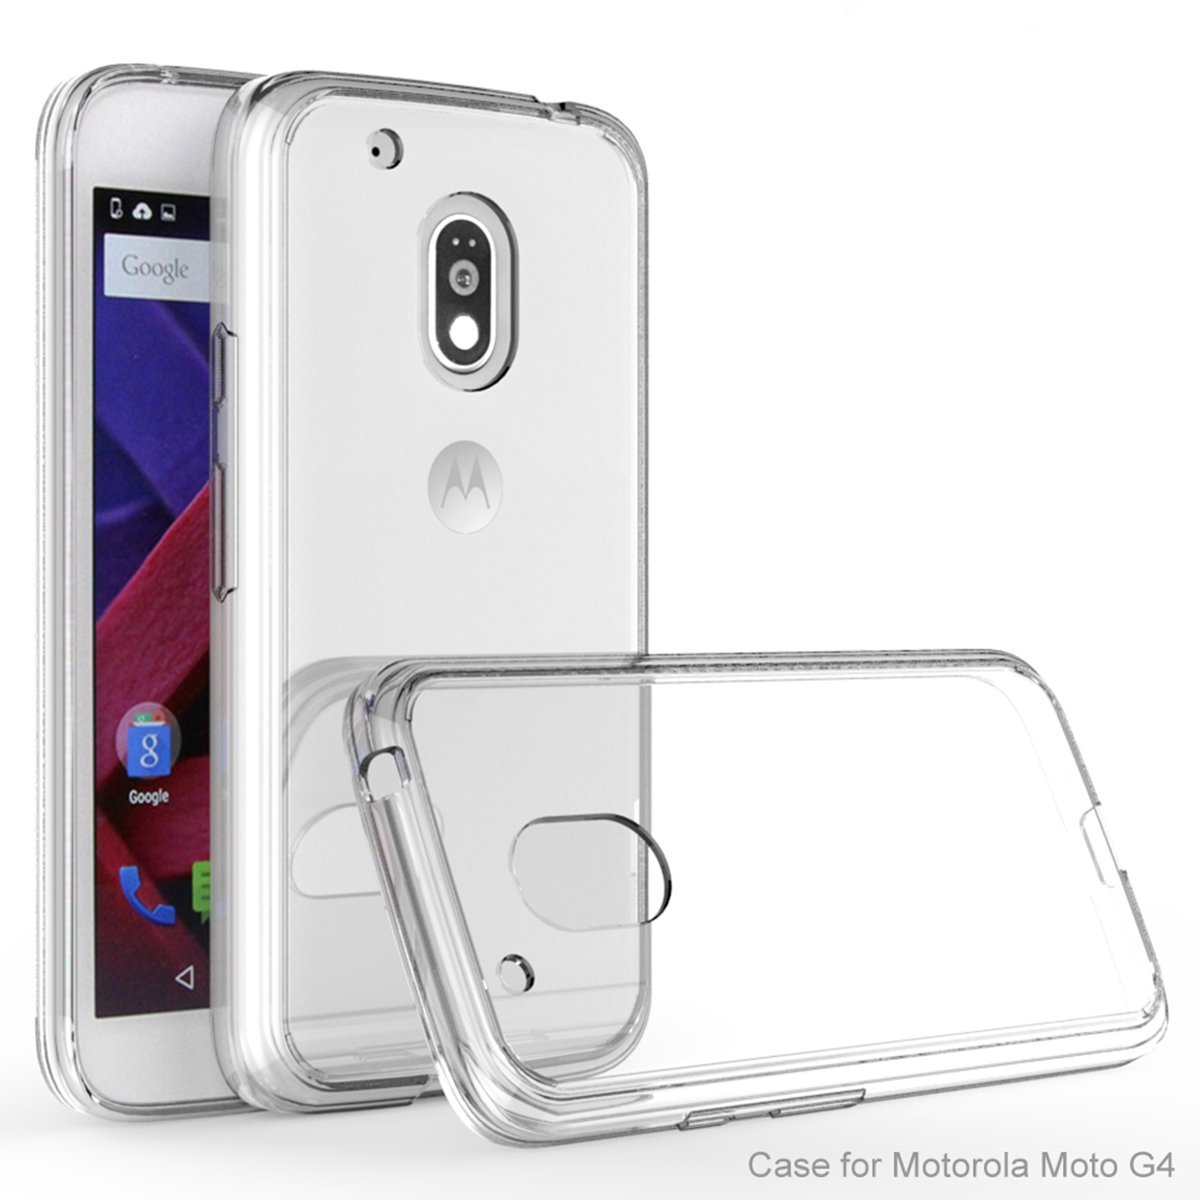 Motorola Moto G4 Plus Cases